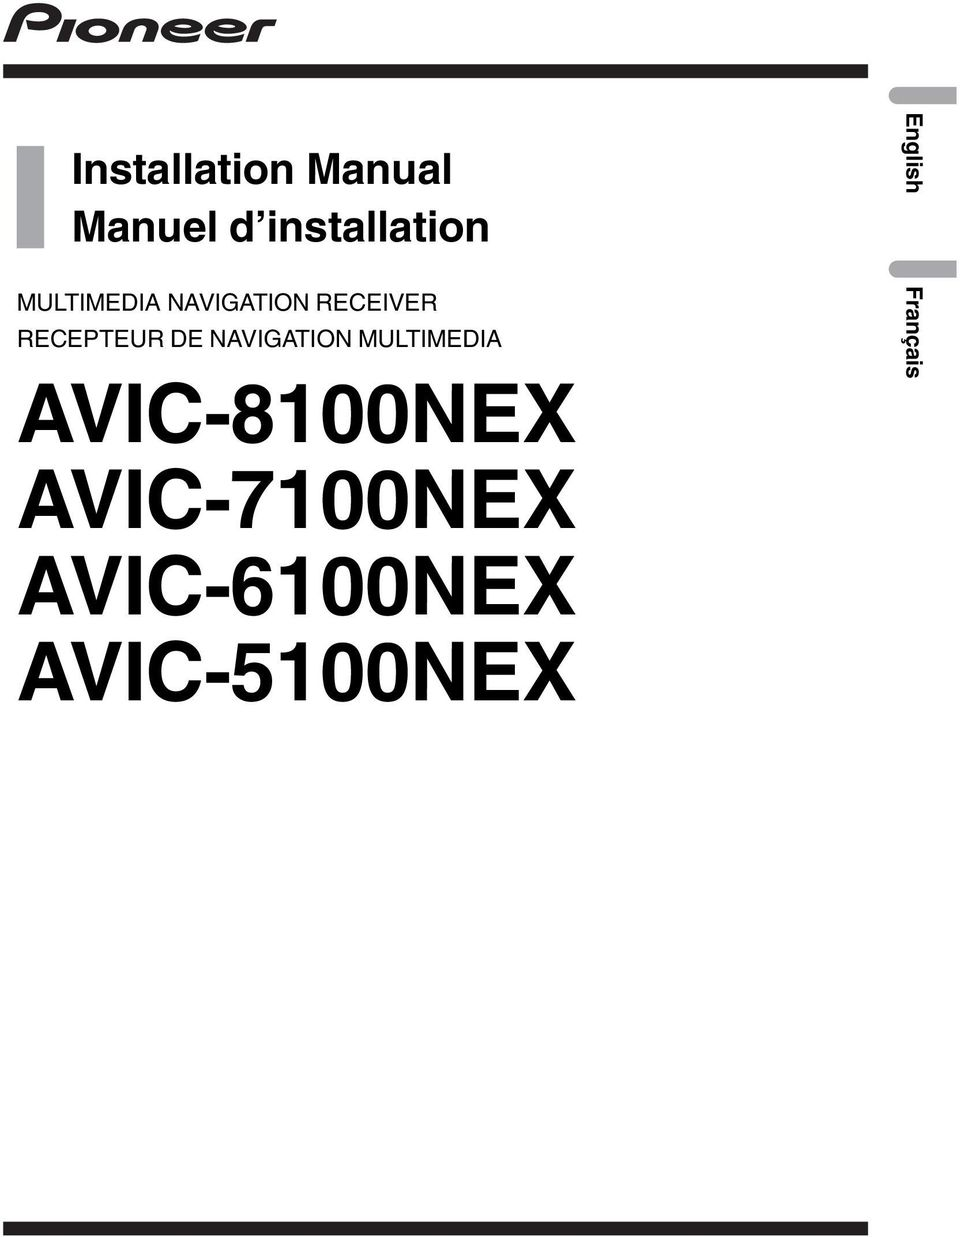 NAVIGATION MULTIMEDIA AVIC-8100NEX